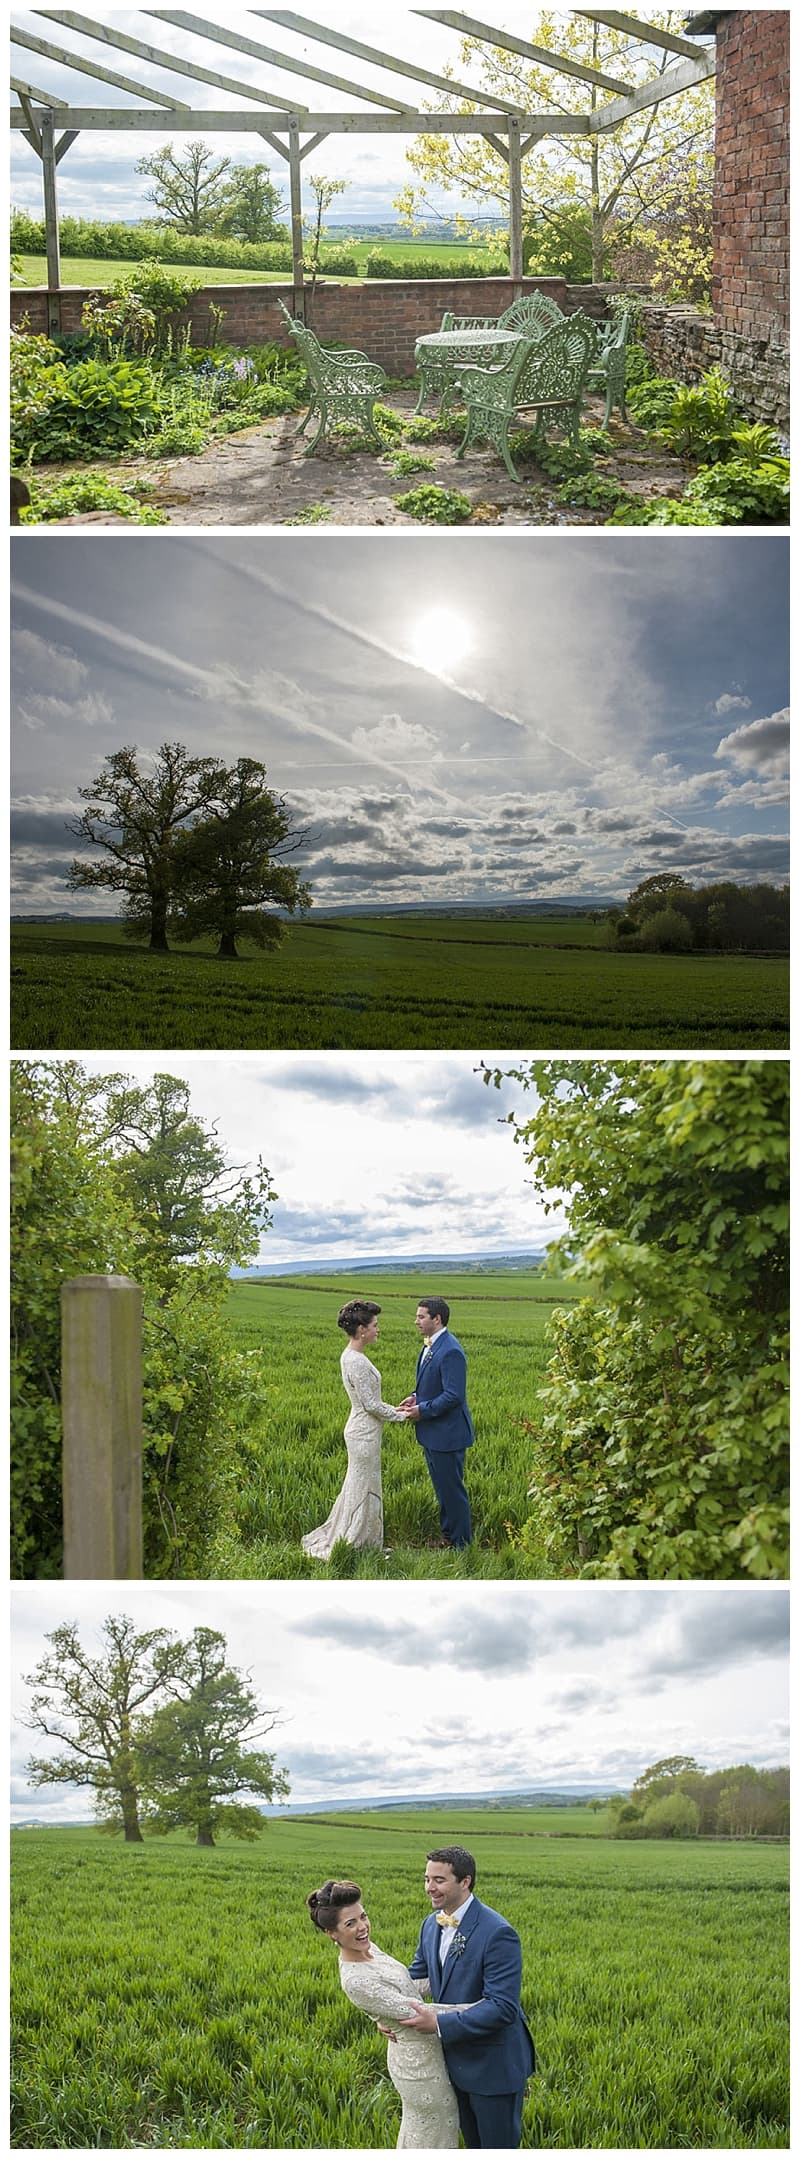 Dewsall Court Wedding, Fran & Alex, Herefordshire Wedding - Benjamin Wetherall Photography ©0080